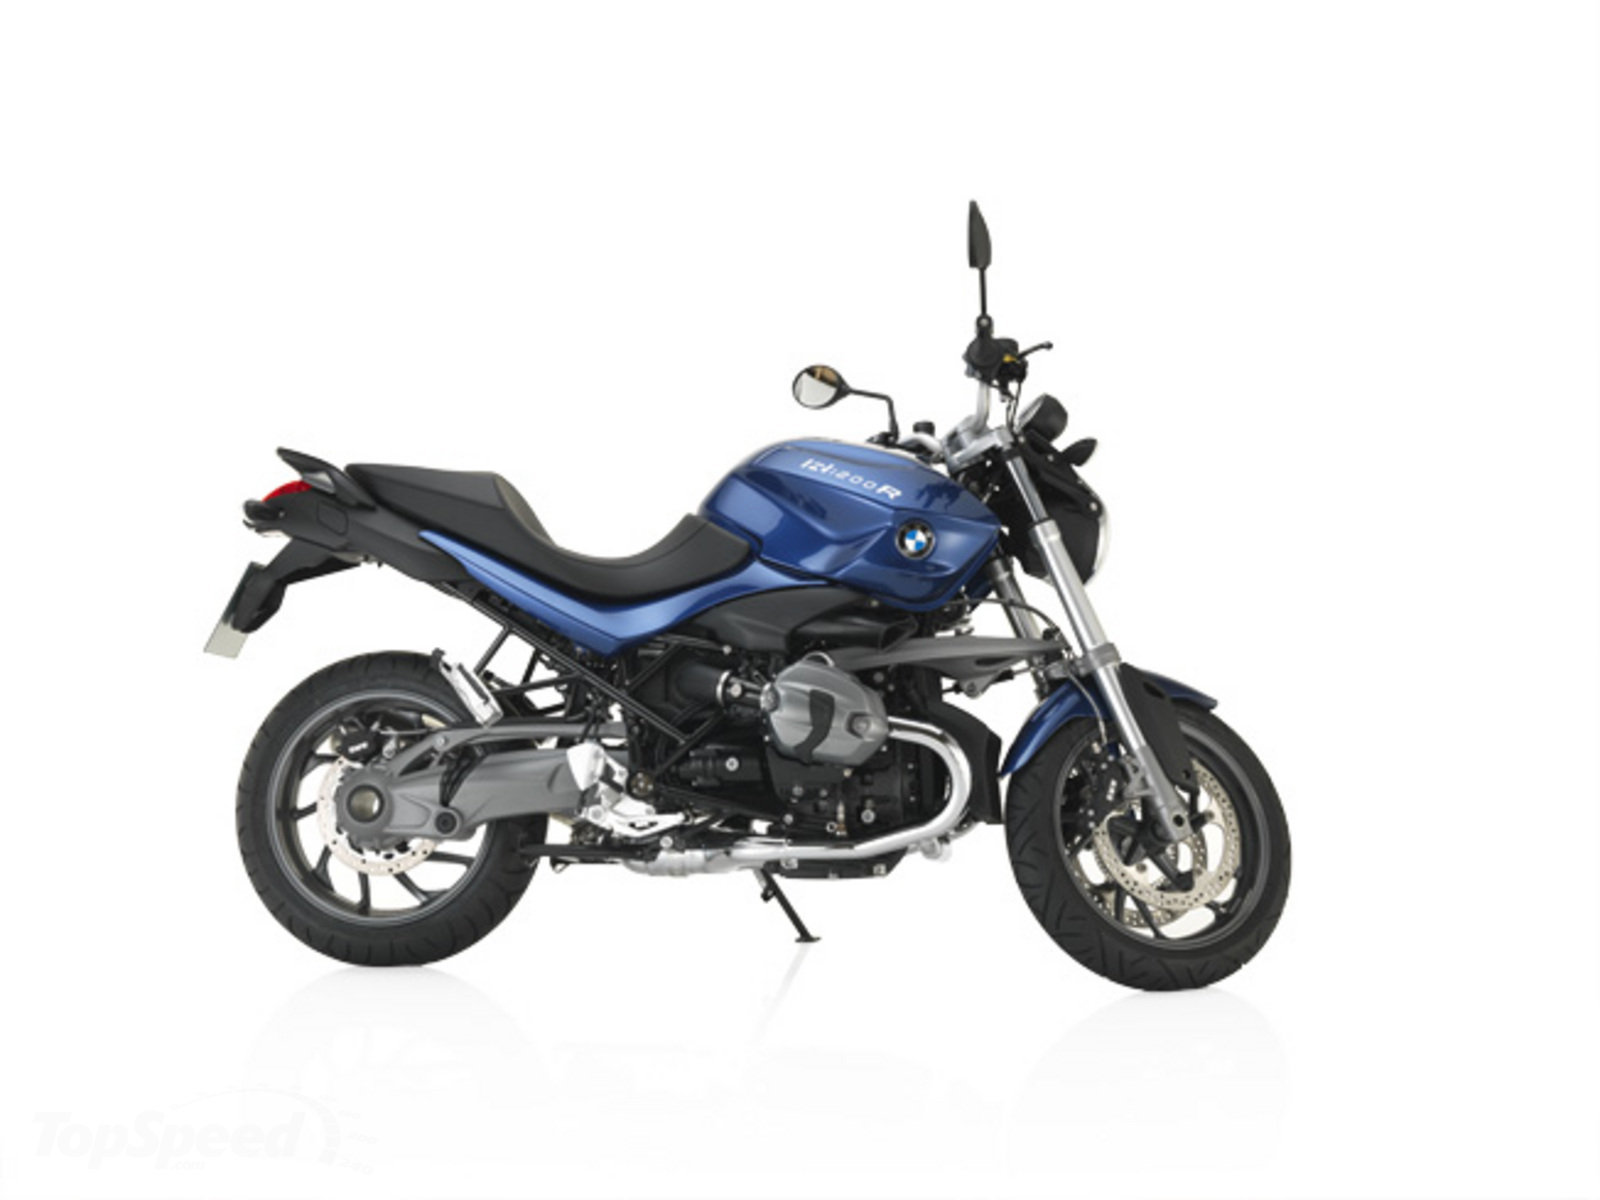 2014 bmw r 1200 r review top speed. Black Bedroom Furniture Sets. Home Design Ideas